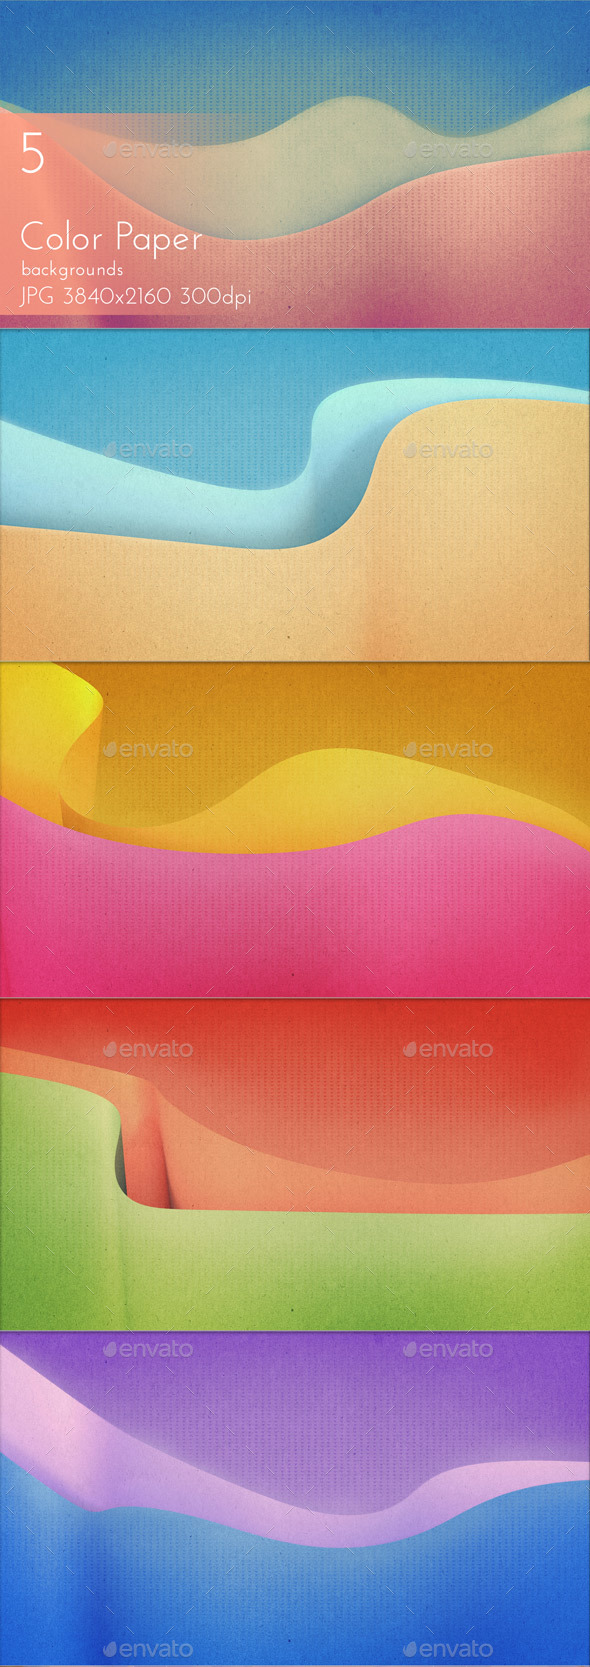 Color Paper - Abstract Backgrounds